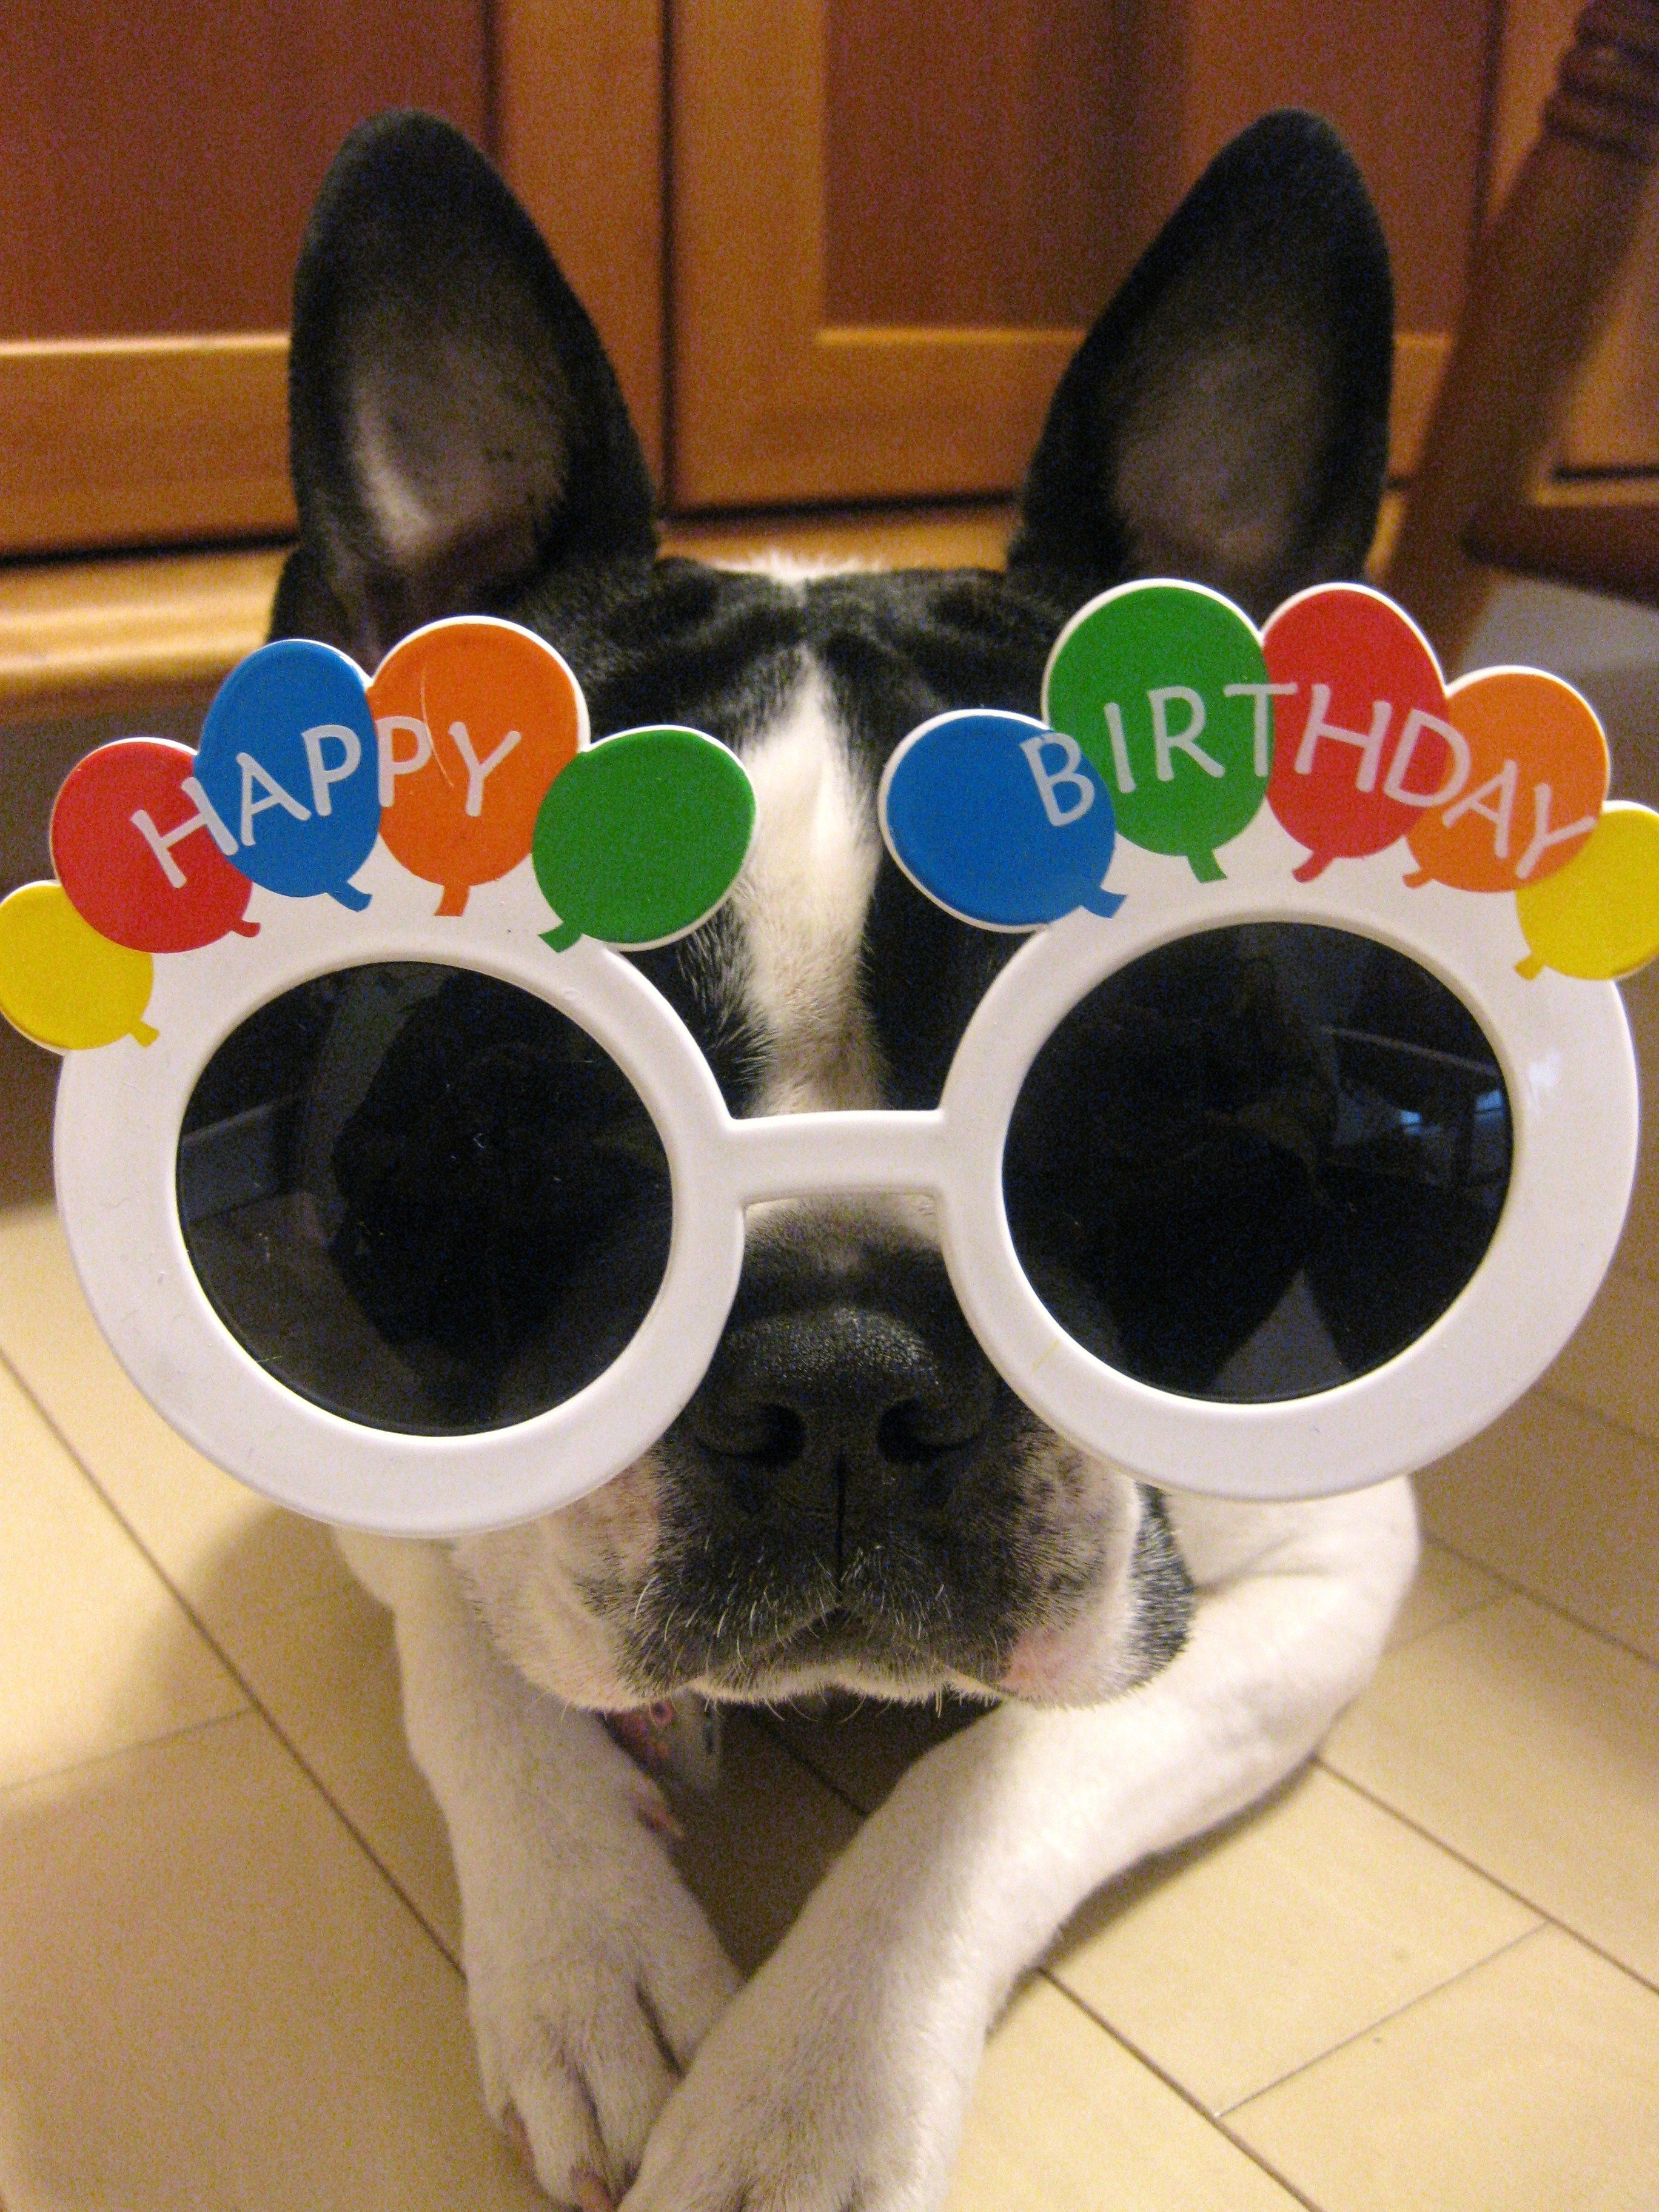 Happy Birthday! Celebrate in style just like this fun